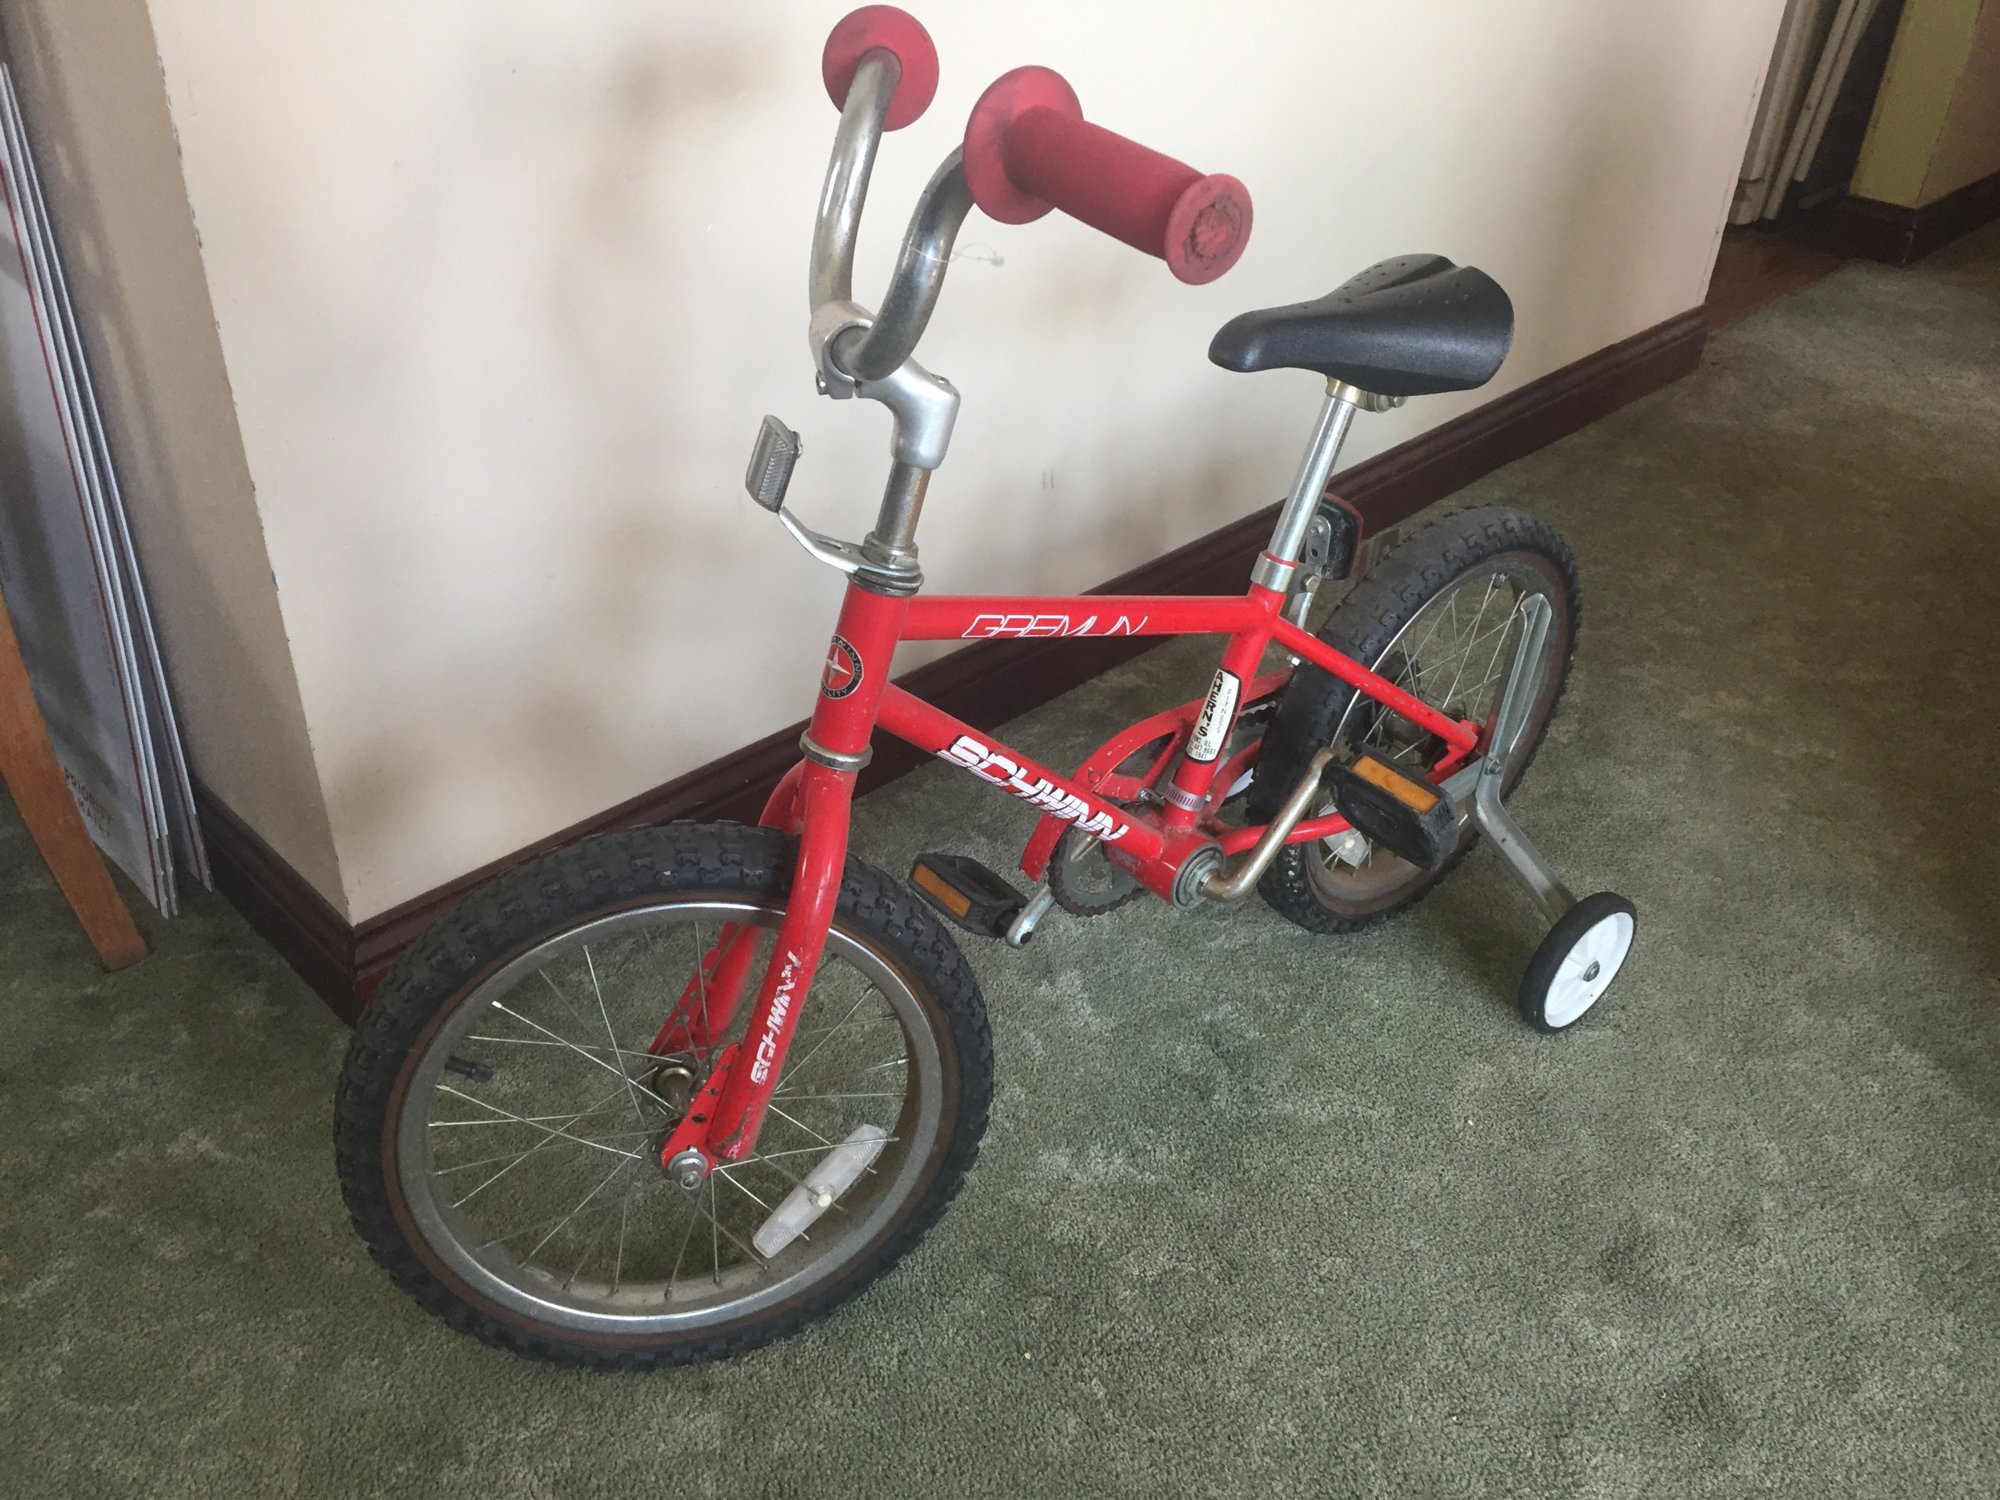 6a6d683836e Schwinn Gremlin pit bike | The Classic and Antique Bicycle Exchange